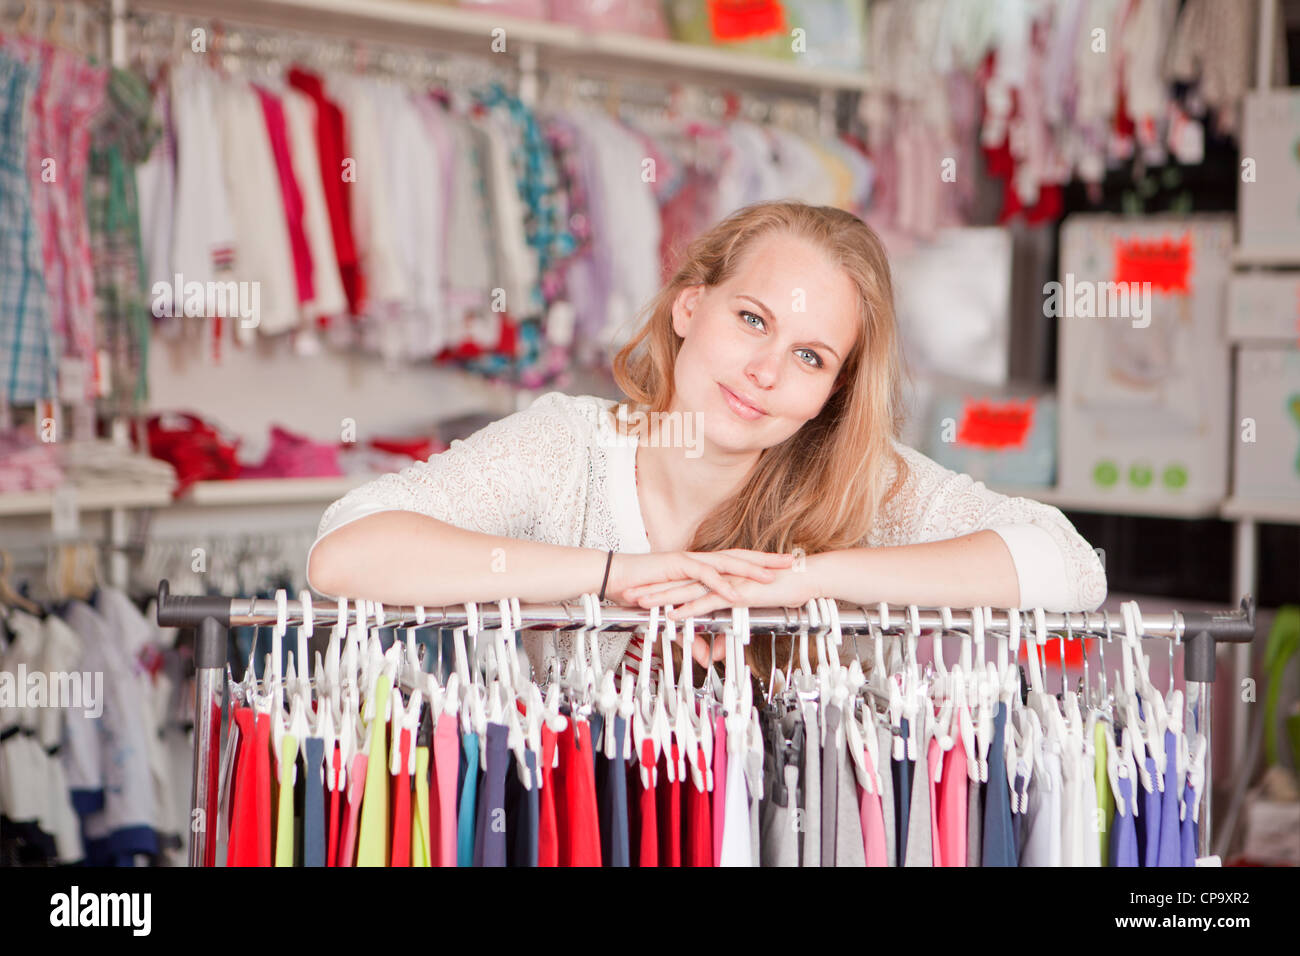 woman shop assistant or retail seller. - Stock Image